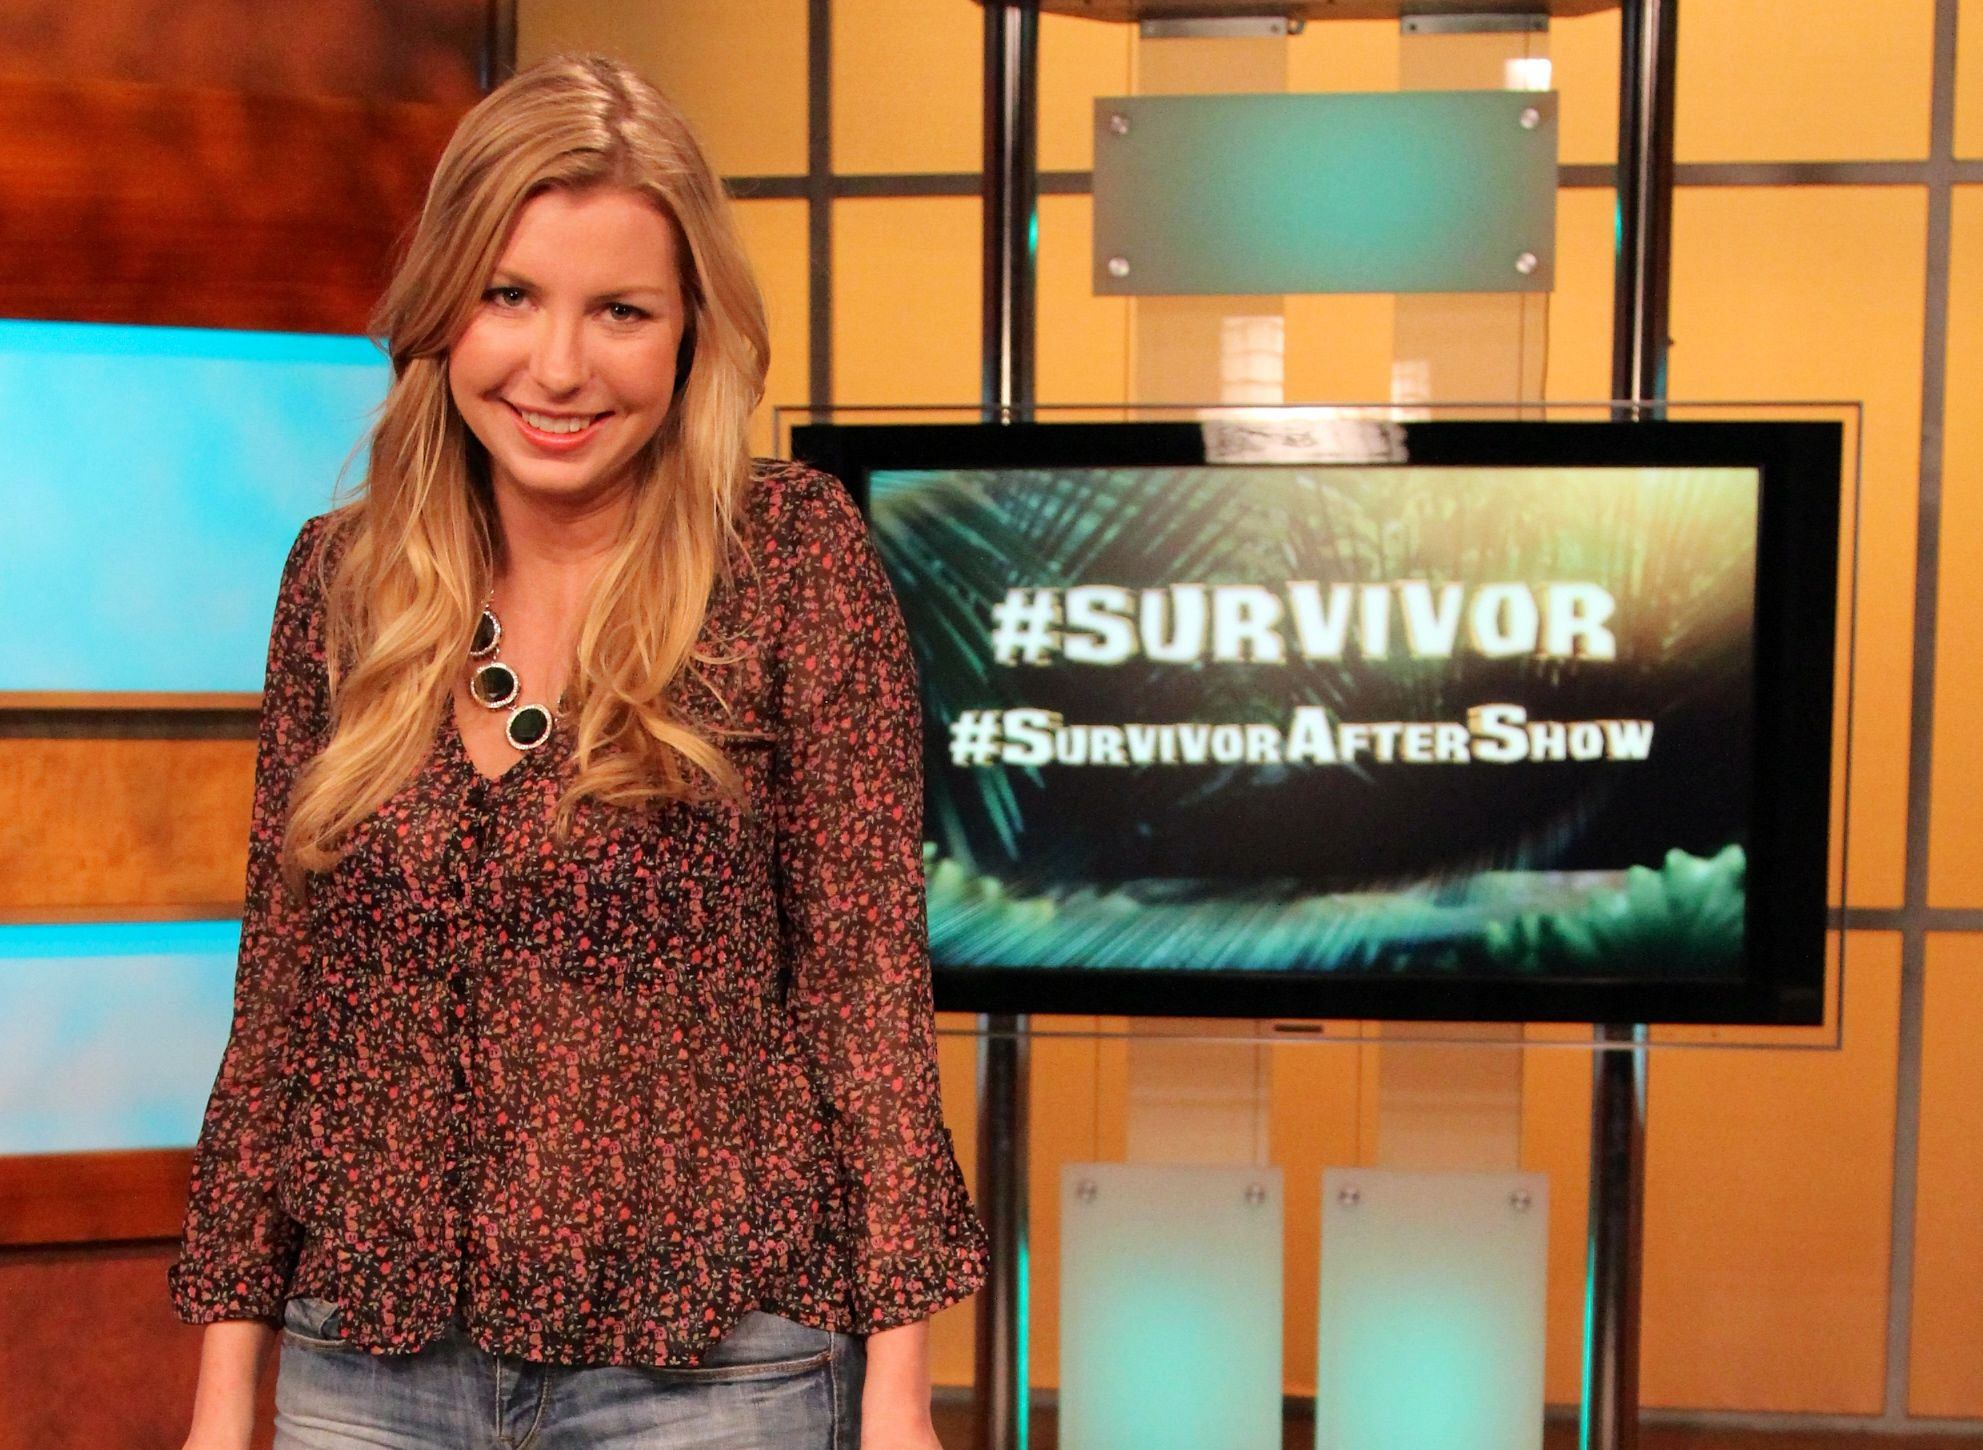 Katie on the Survivor After Show